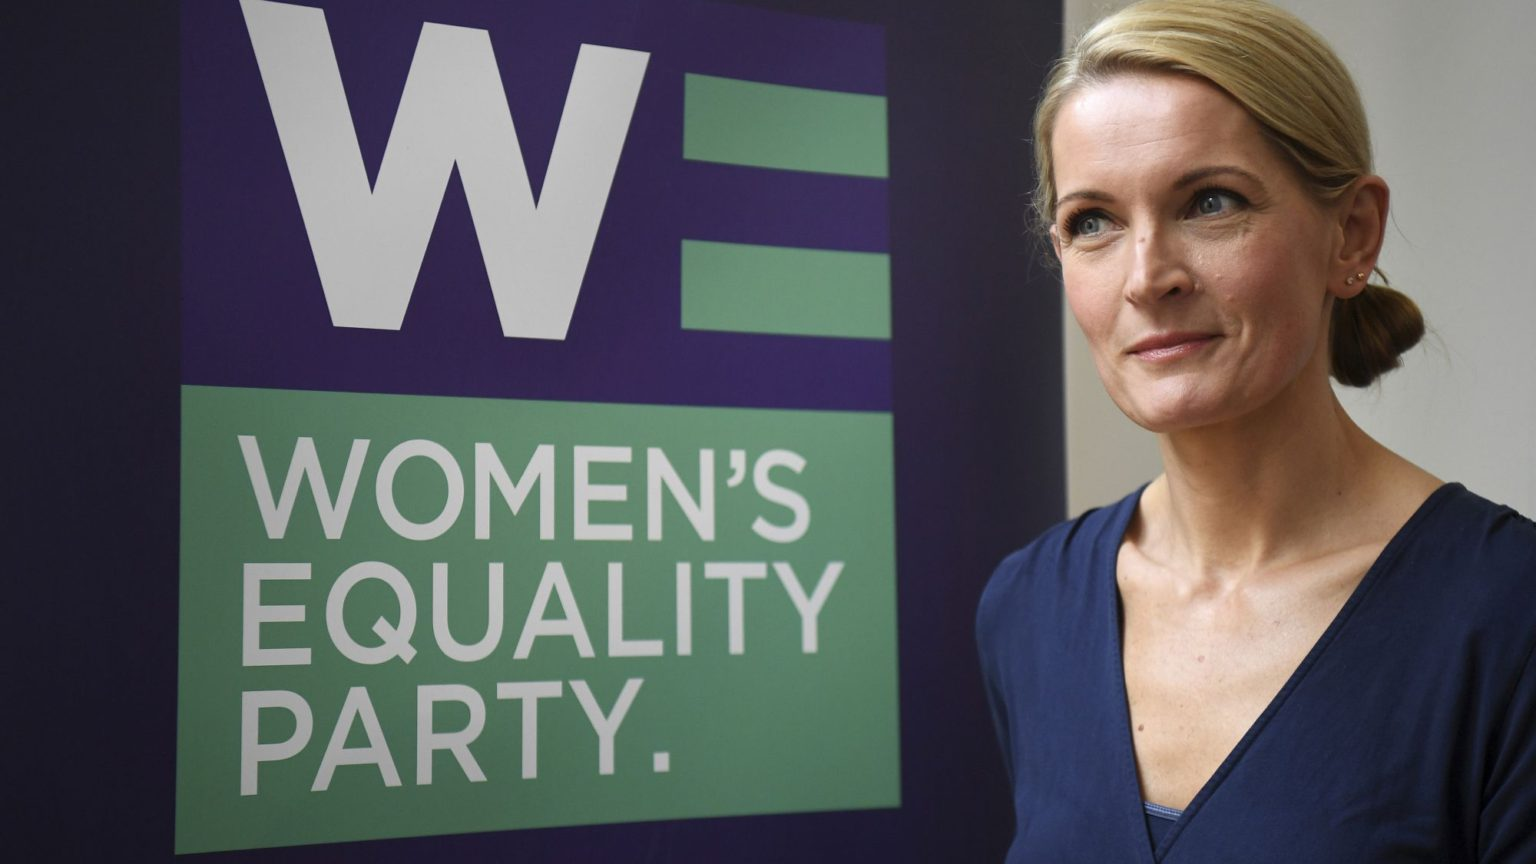 The Women's Equality Party has nothing to offer women